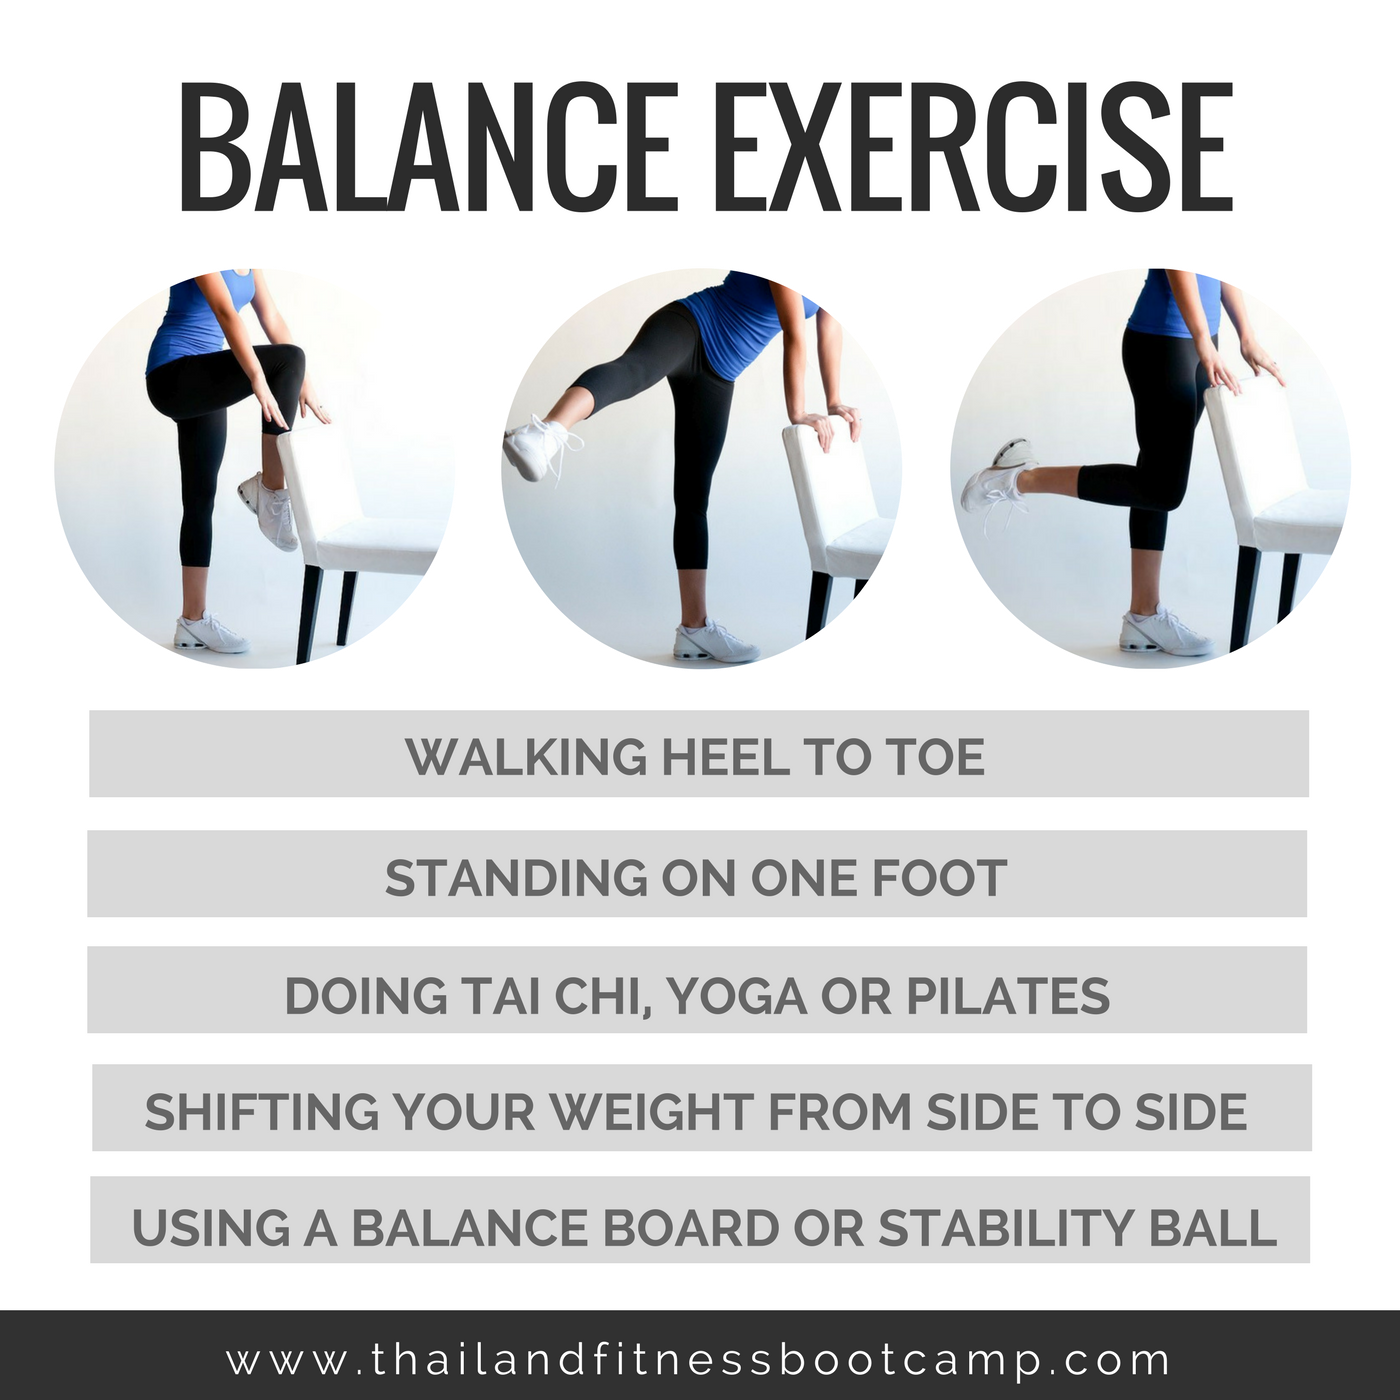 Balance exercises improve your ability to control and stabilize